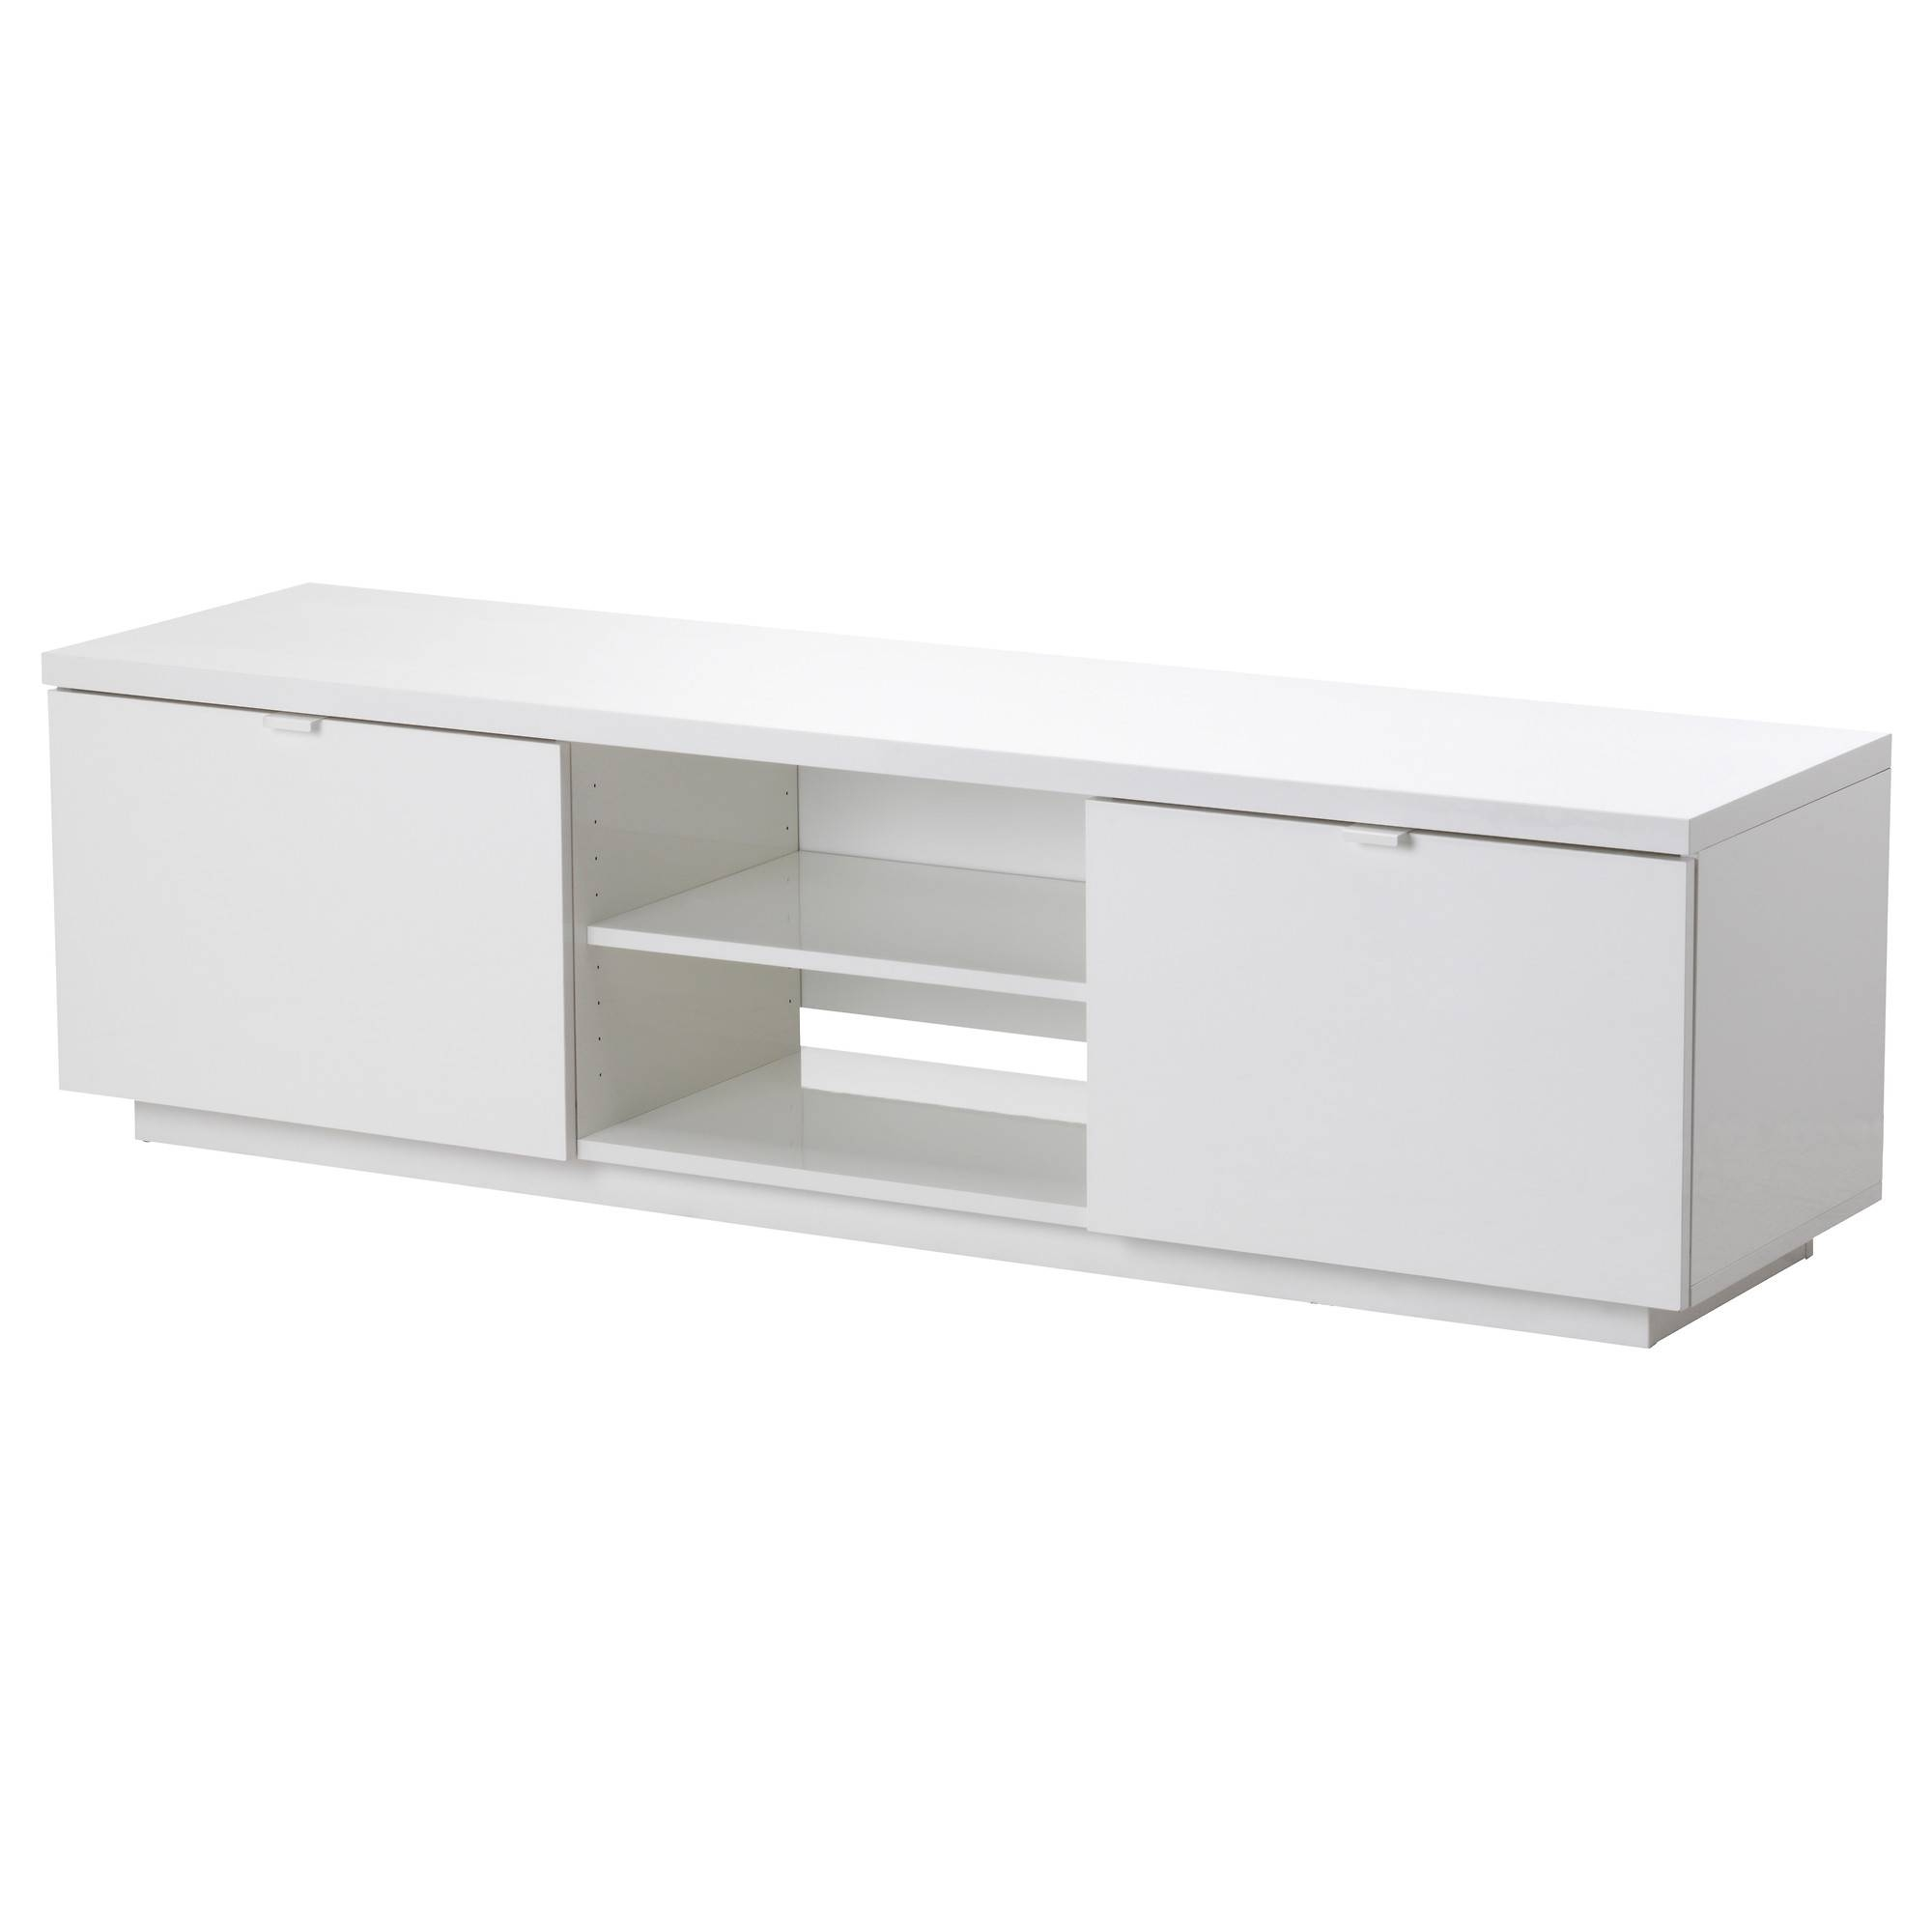 Byås Tv Unit - Ikea inside Tv Table (Image 2 of 15)